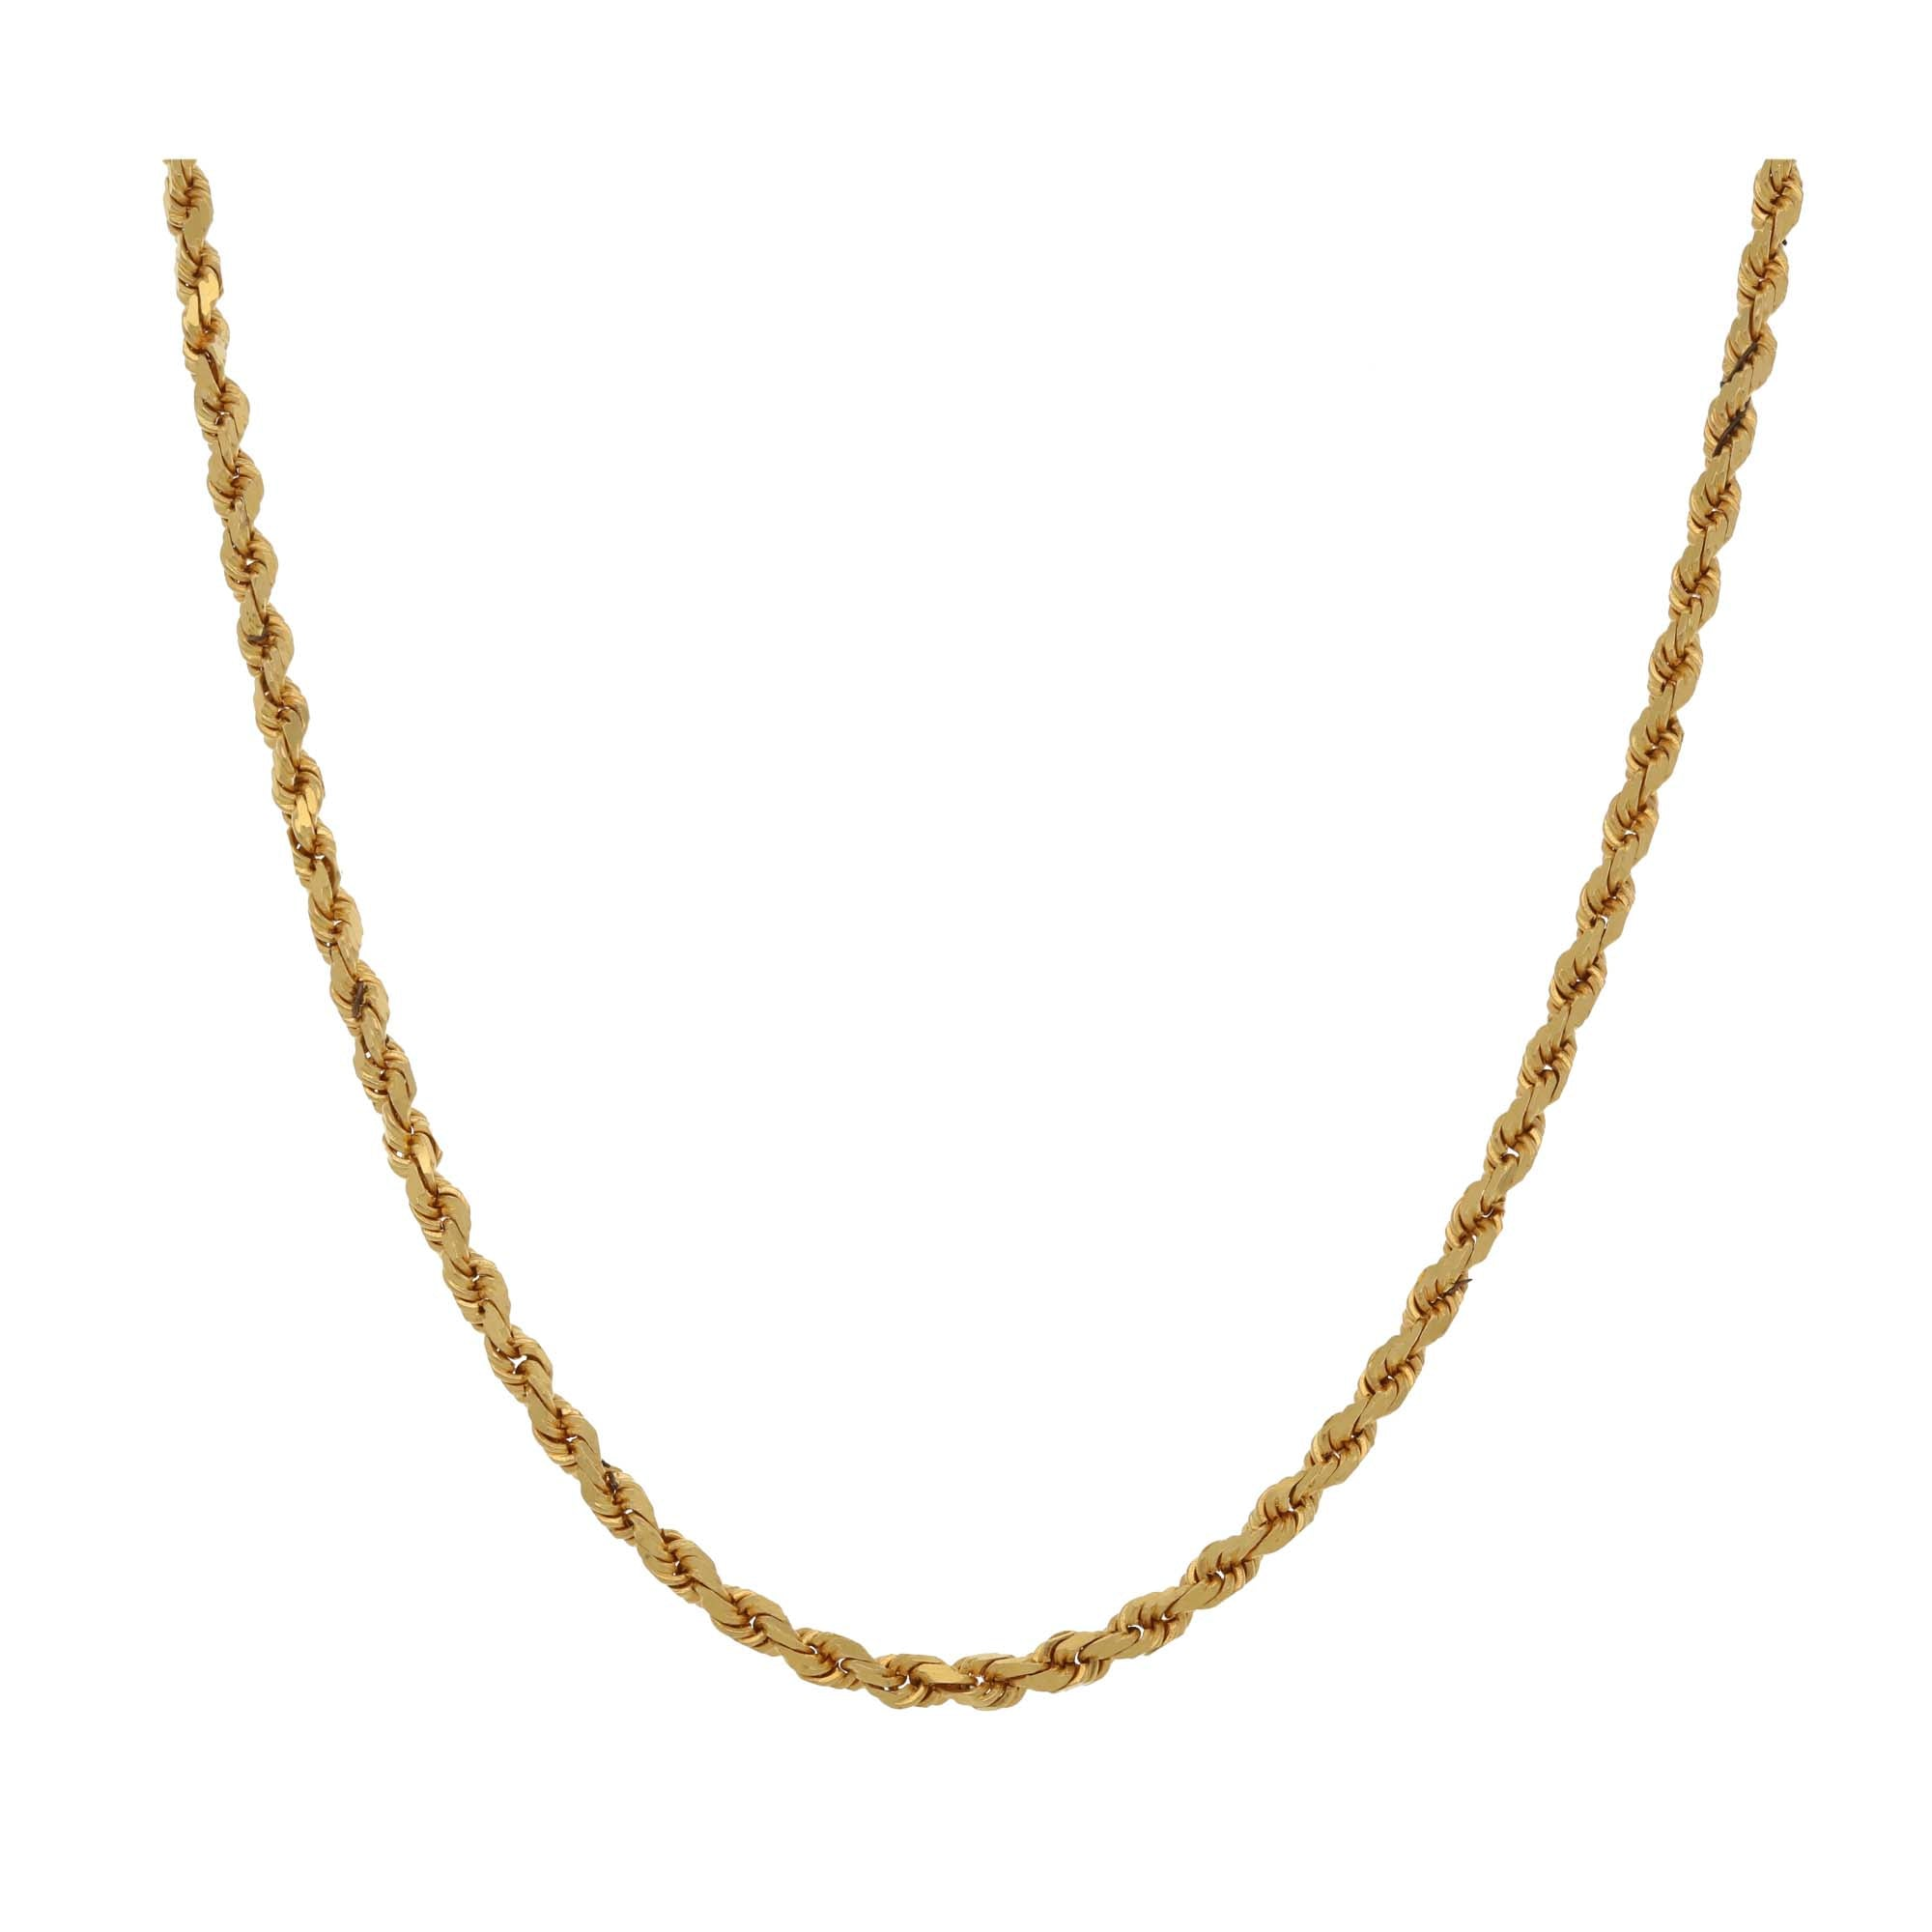 22ct Gold Ladies Rope Chain 22